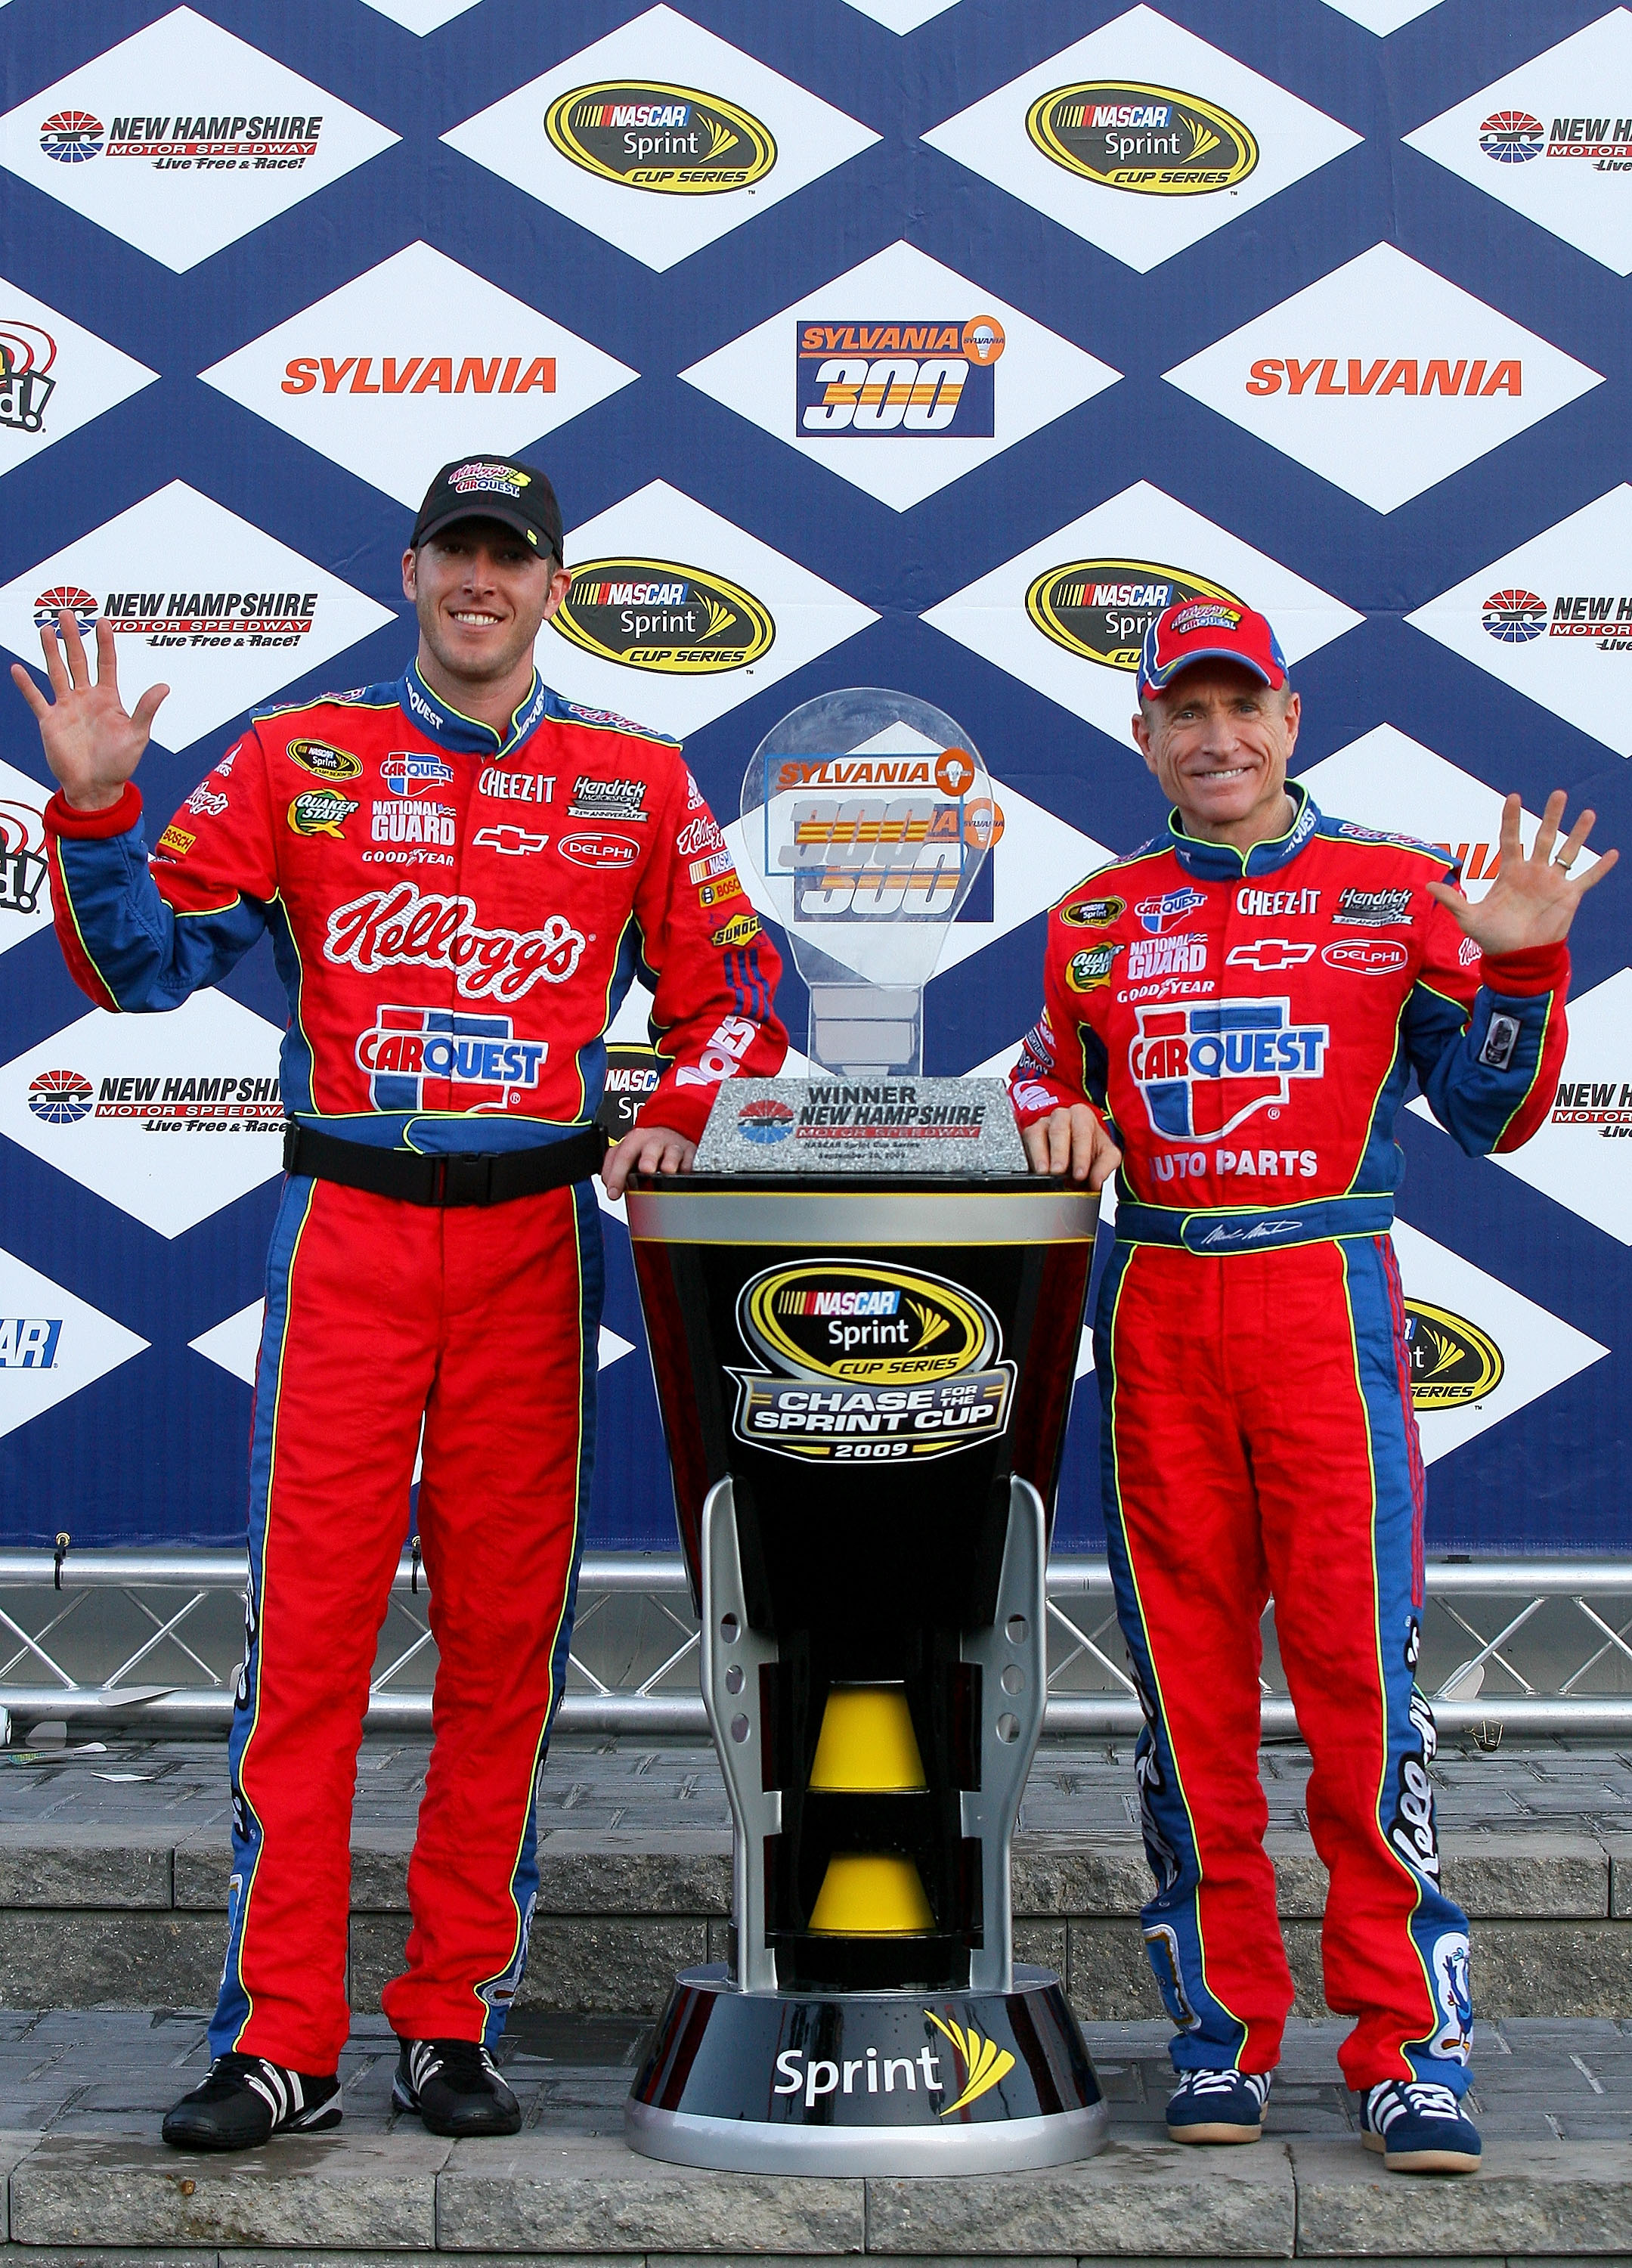 LOUDON, NH - SEPTEMBER 20:  Mark Martin (R), driver of the #5 CARQUEST/Kellogg's Chevrolet, and crew chief Alan Gustafson celebrates with the trophy in victory lane after winning the NASCAR Sprint Cup Series Sylvania 300 at the New Hampshire Motor Speedwa